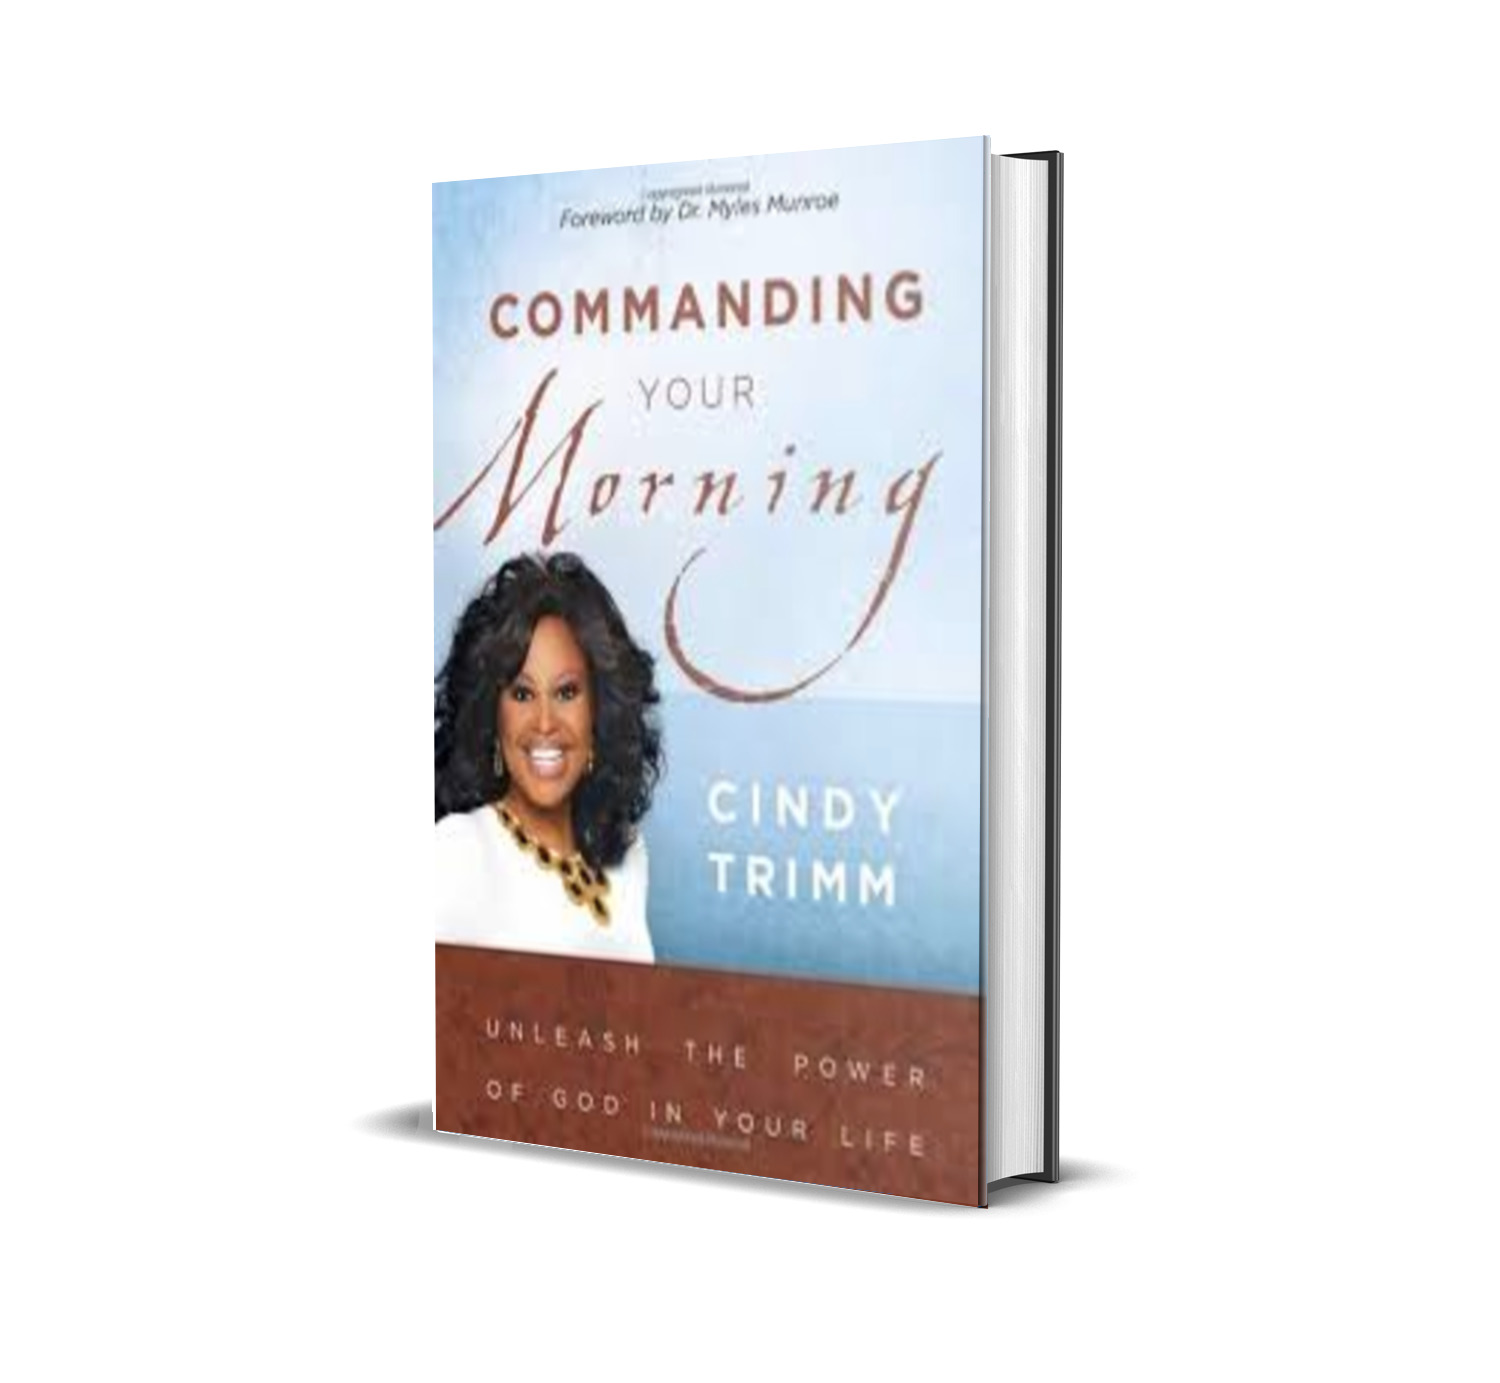 COMMANDING YOUR MORNING - Cindy Trimm